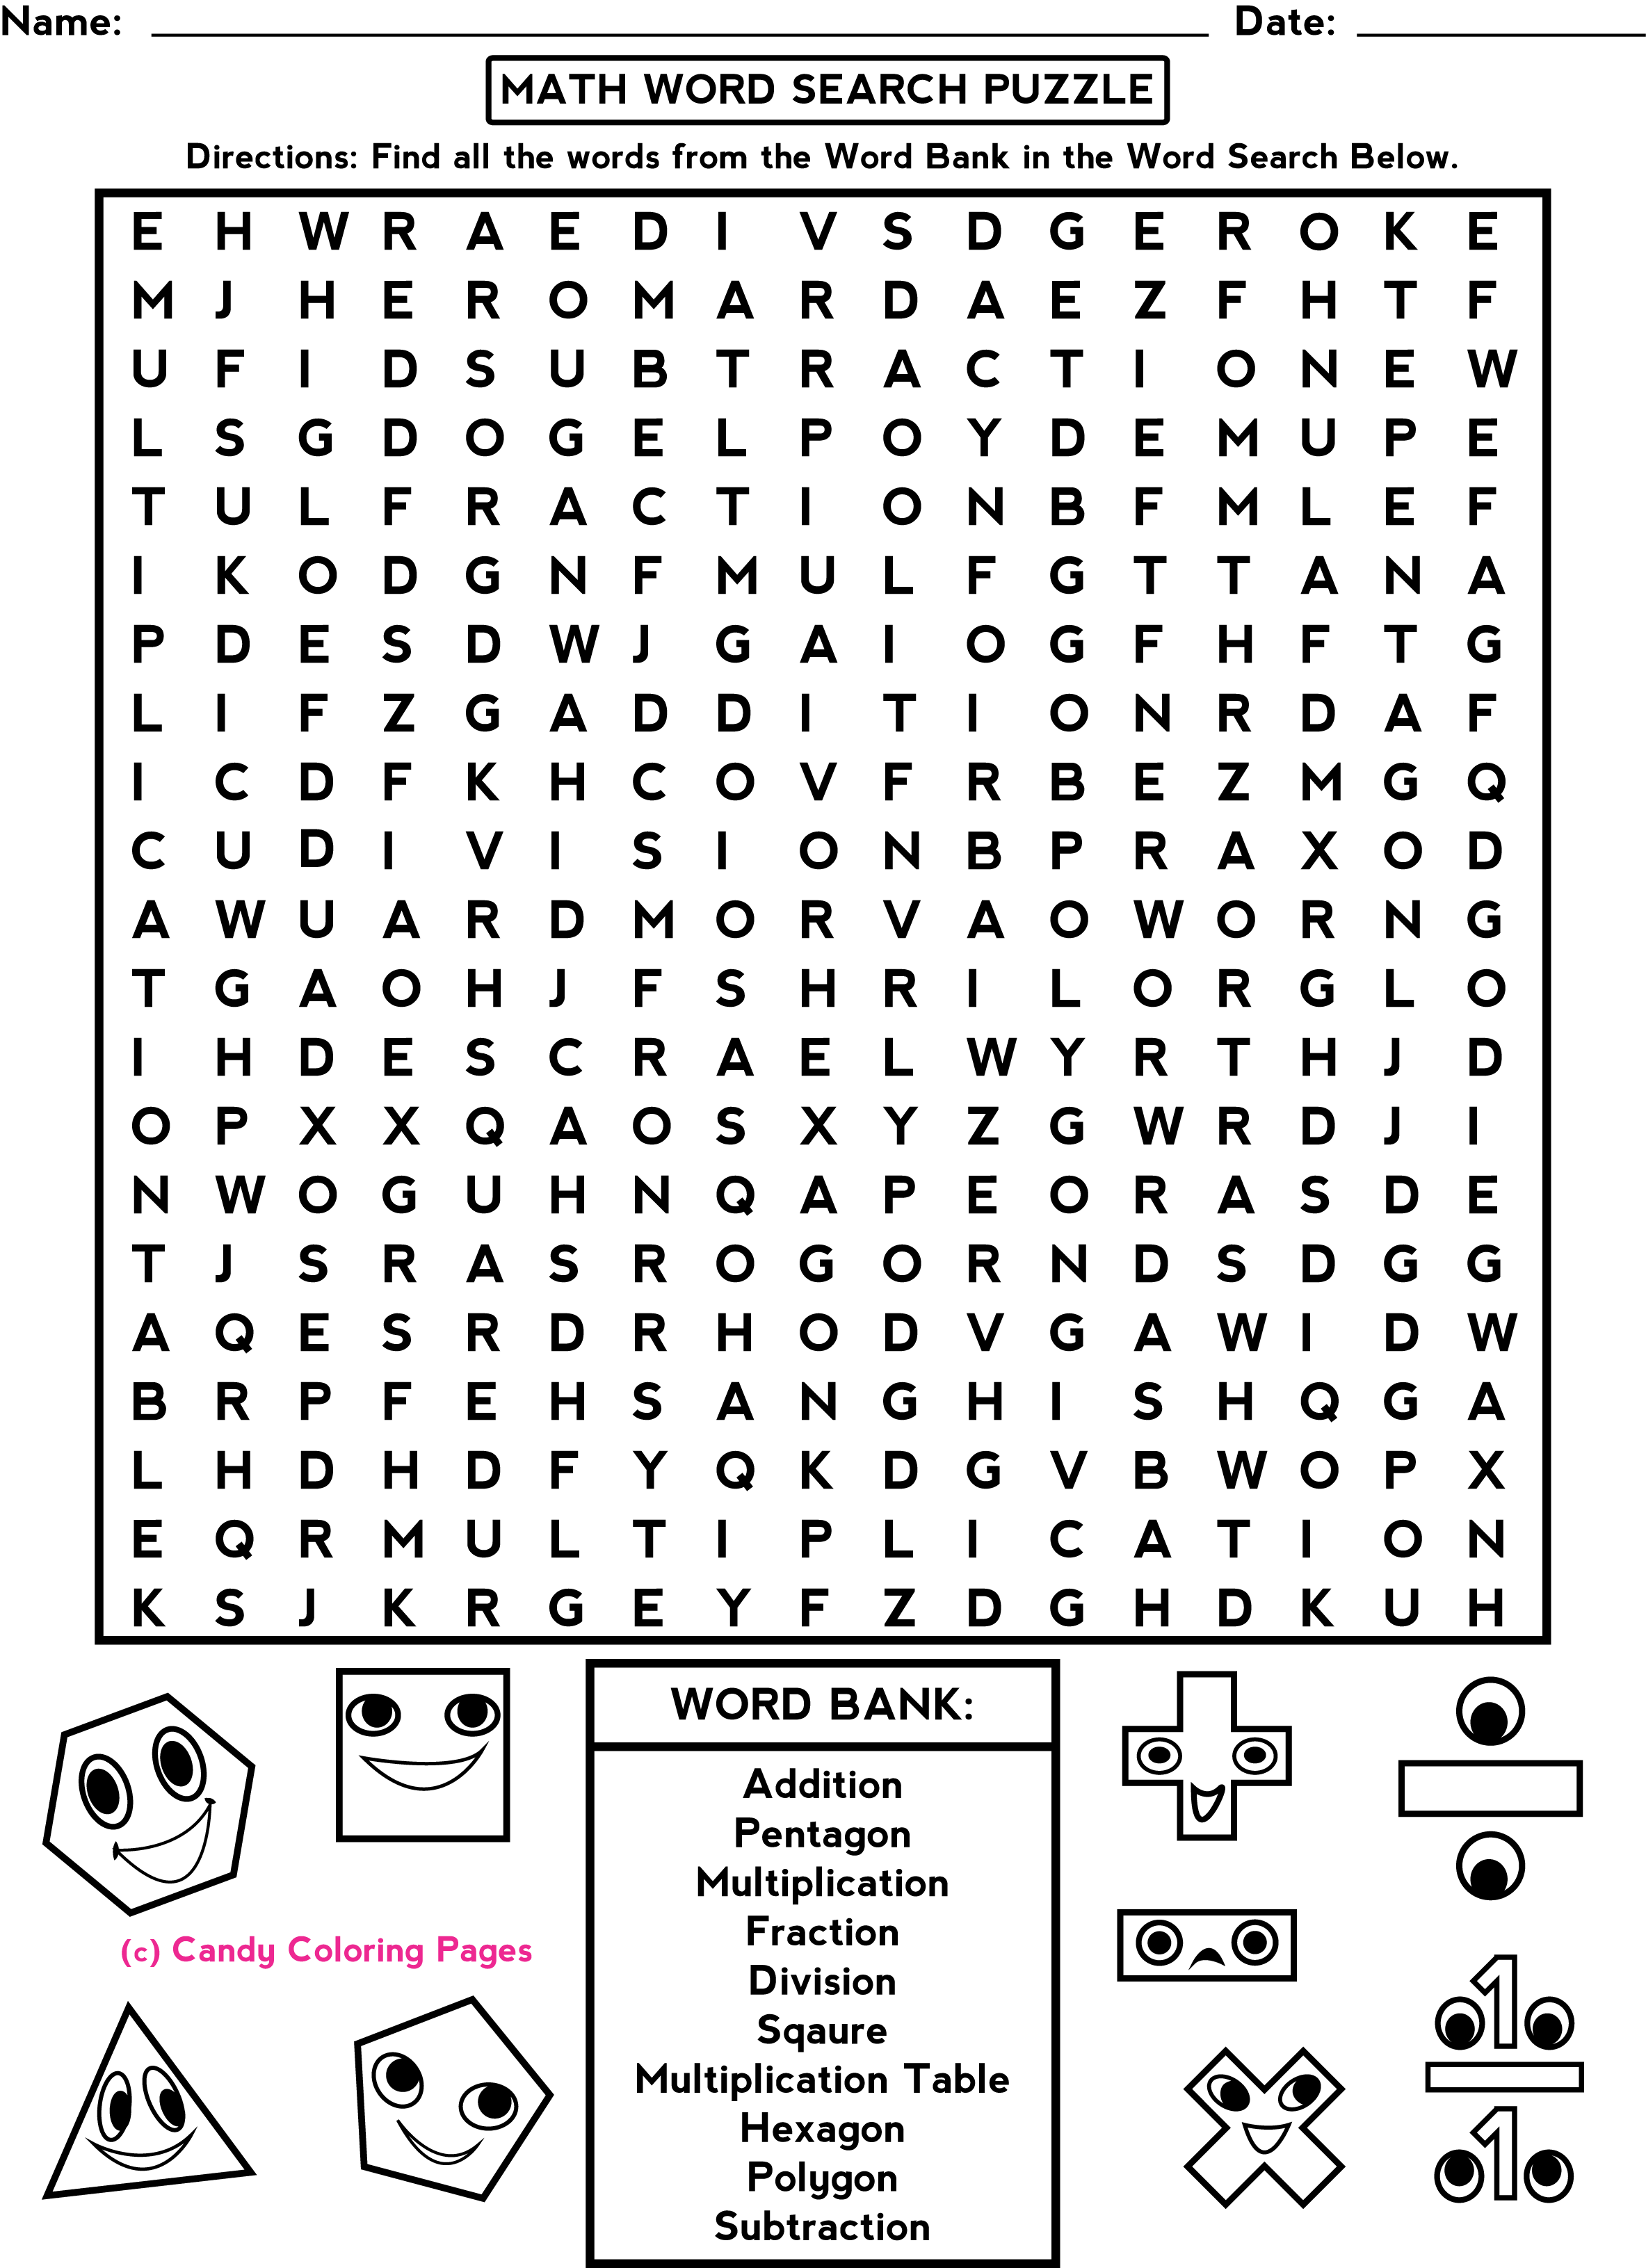 Uncategorized Maths Puzzles For Kids Worksheets middle school math puzzle worksheets puzzles image quotes worksheets